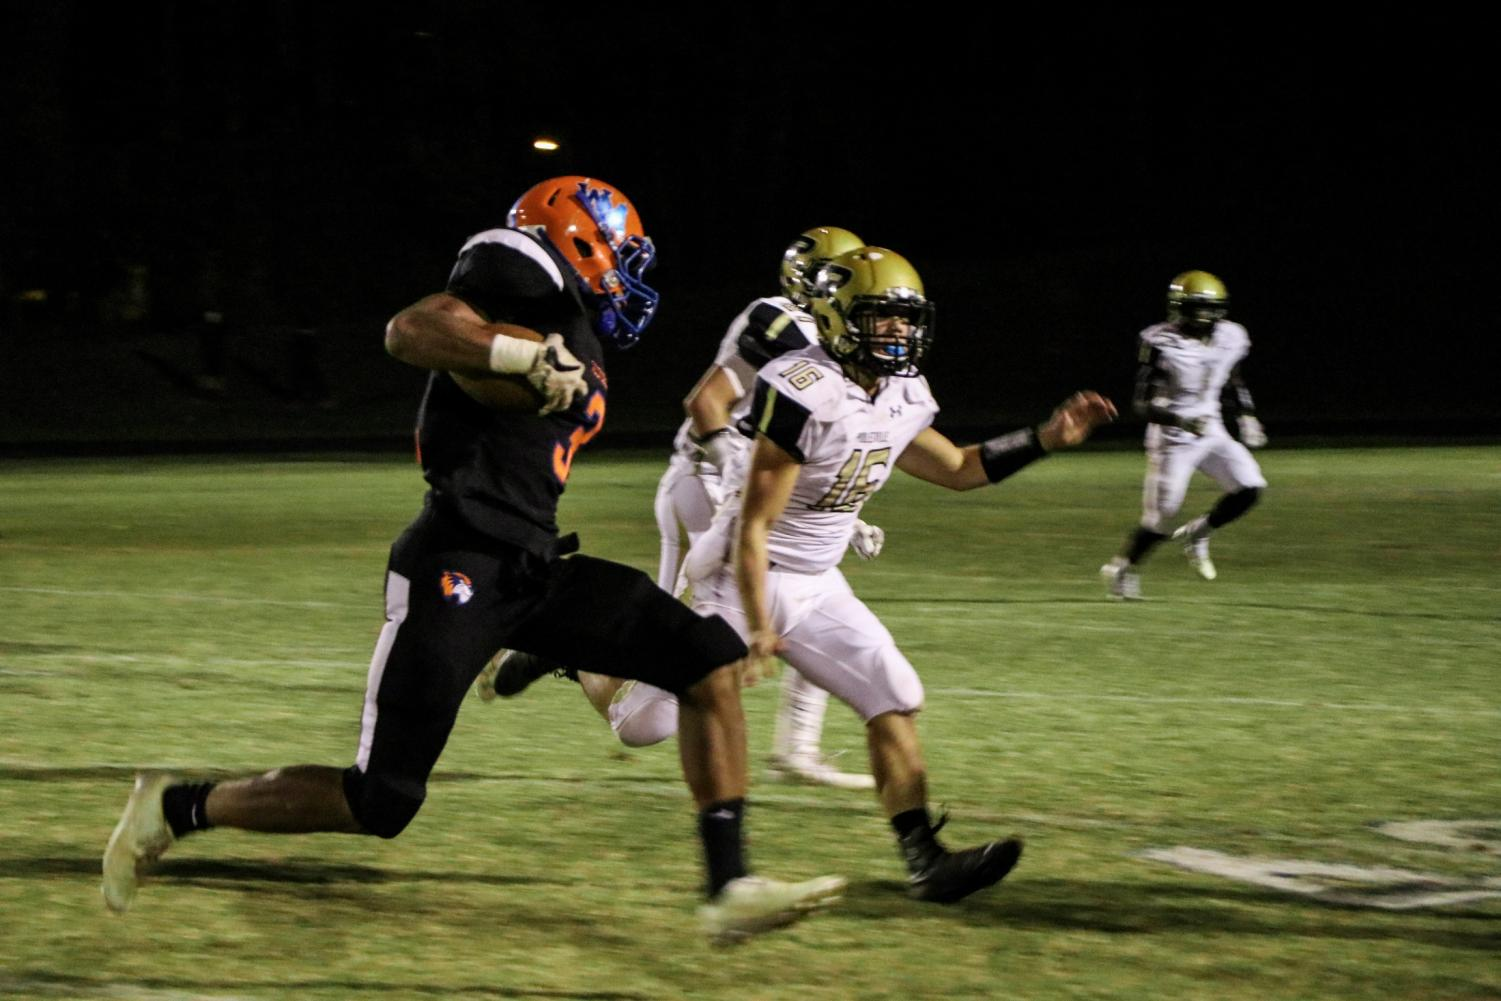 Junior running back Anthony Rush carries the ball on the outside